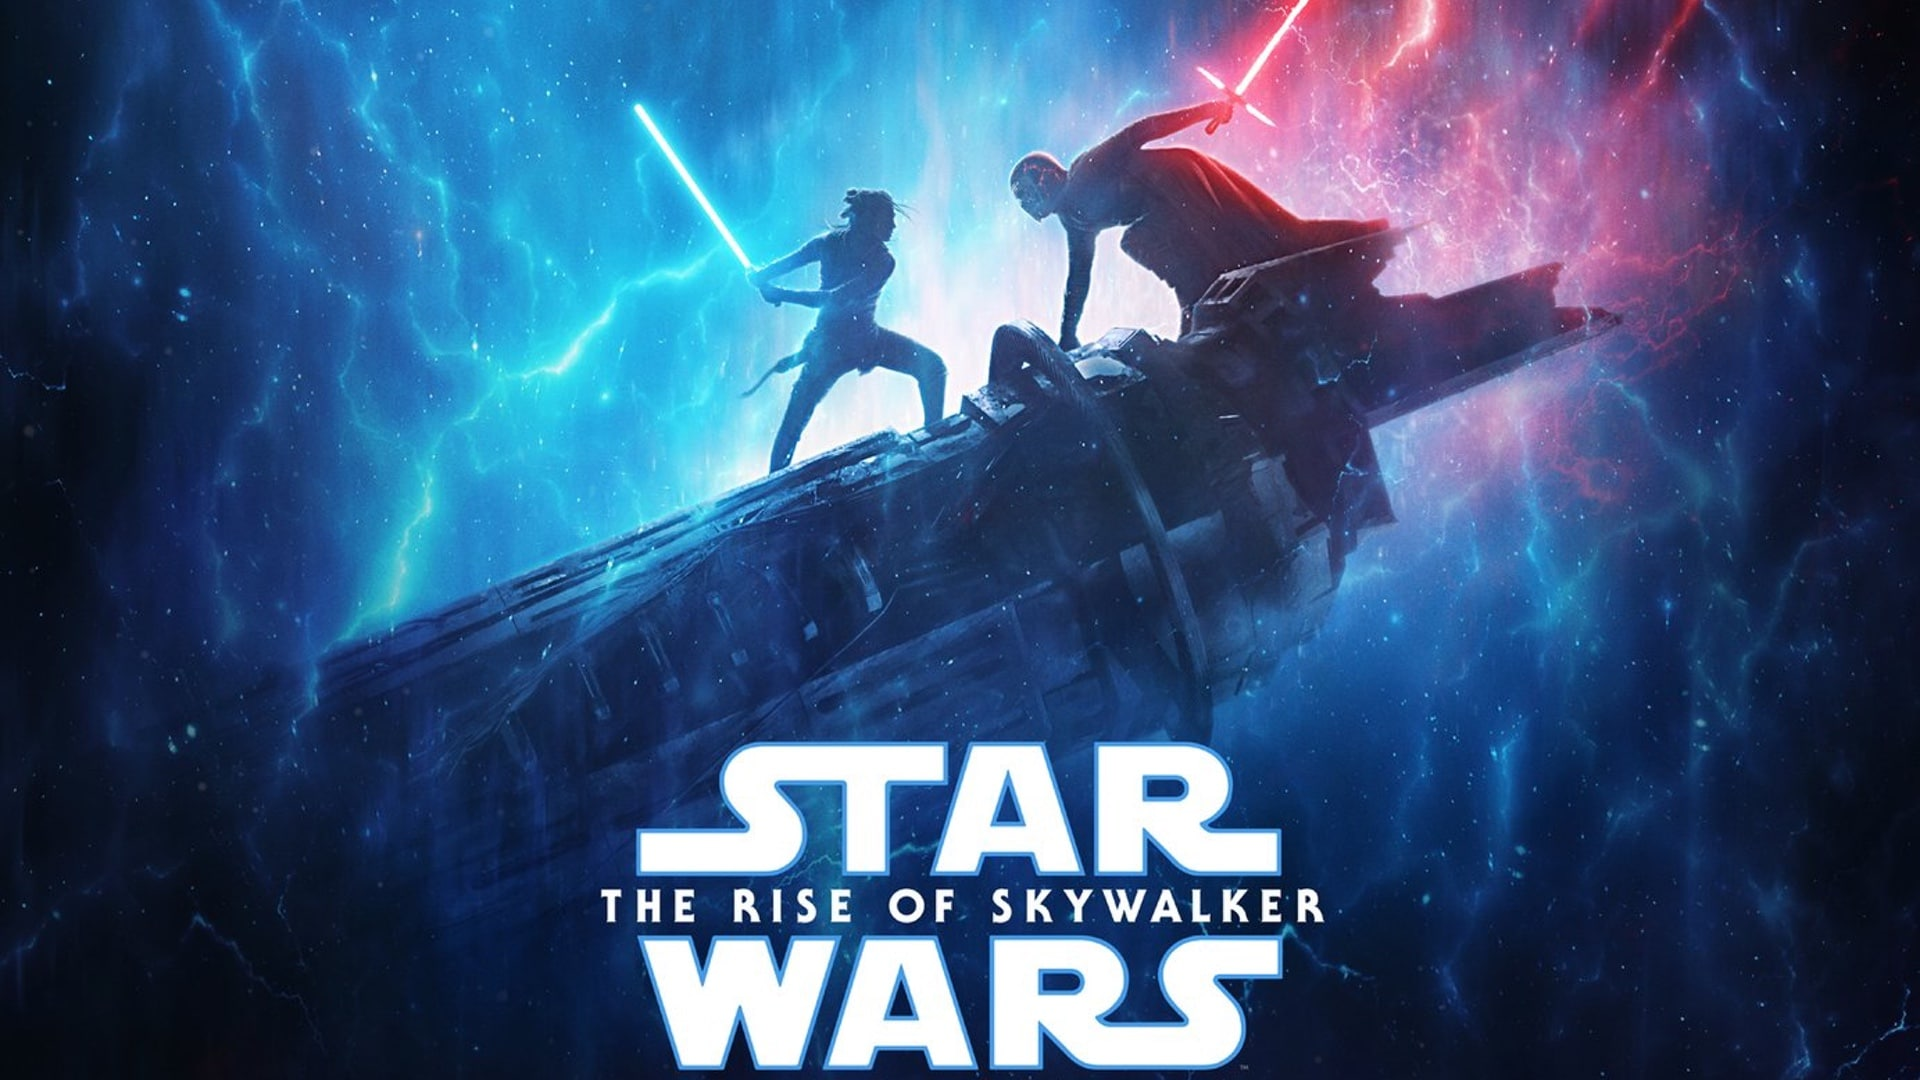 Fortnite – Star Wars: The Rise Of Skywalker footage